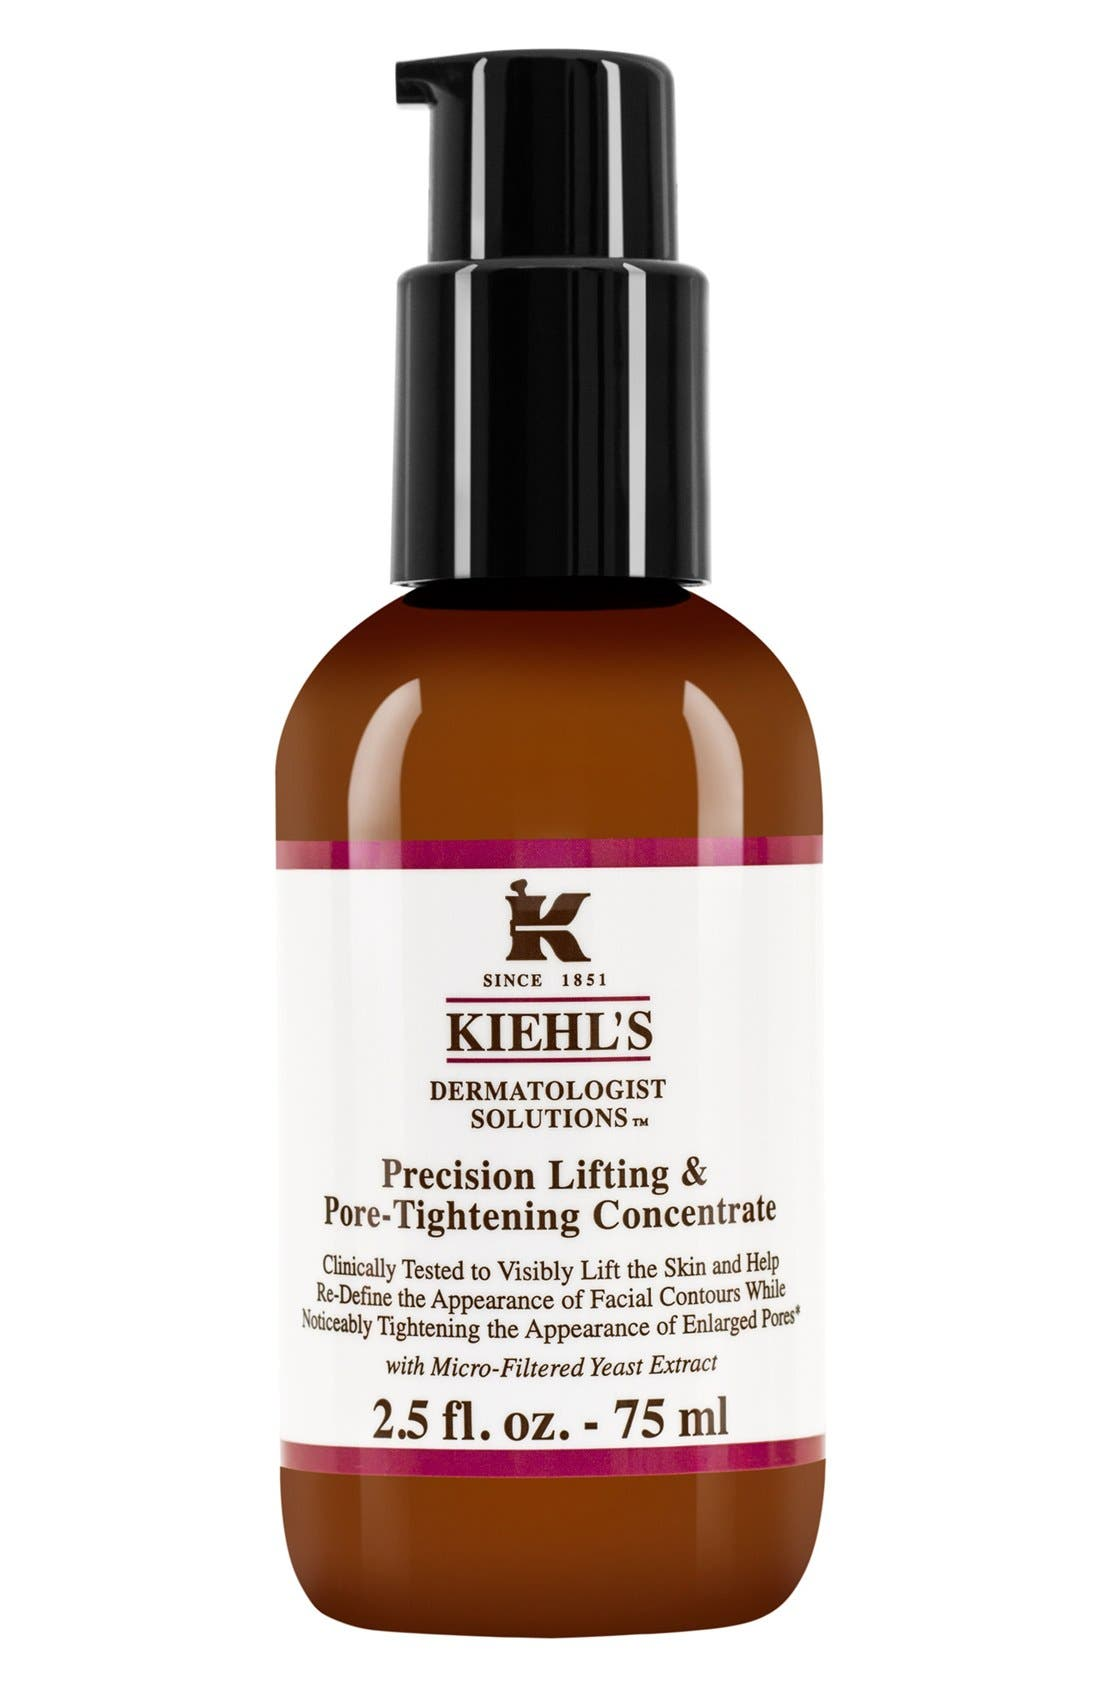 Kiehl's Since 1851 'Dermatologist Solutions™' Precision Lifting & Pore-Tightening Concentrate (Nordstrom Exclusive)